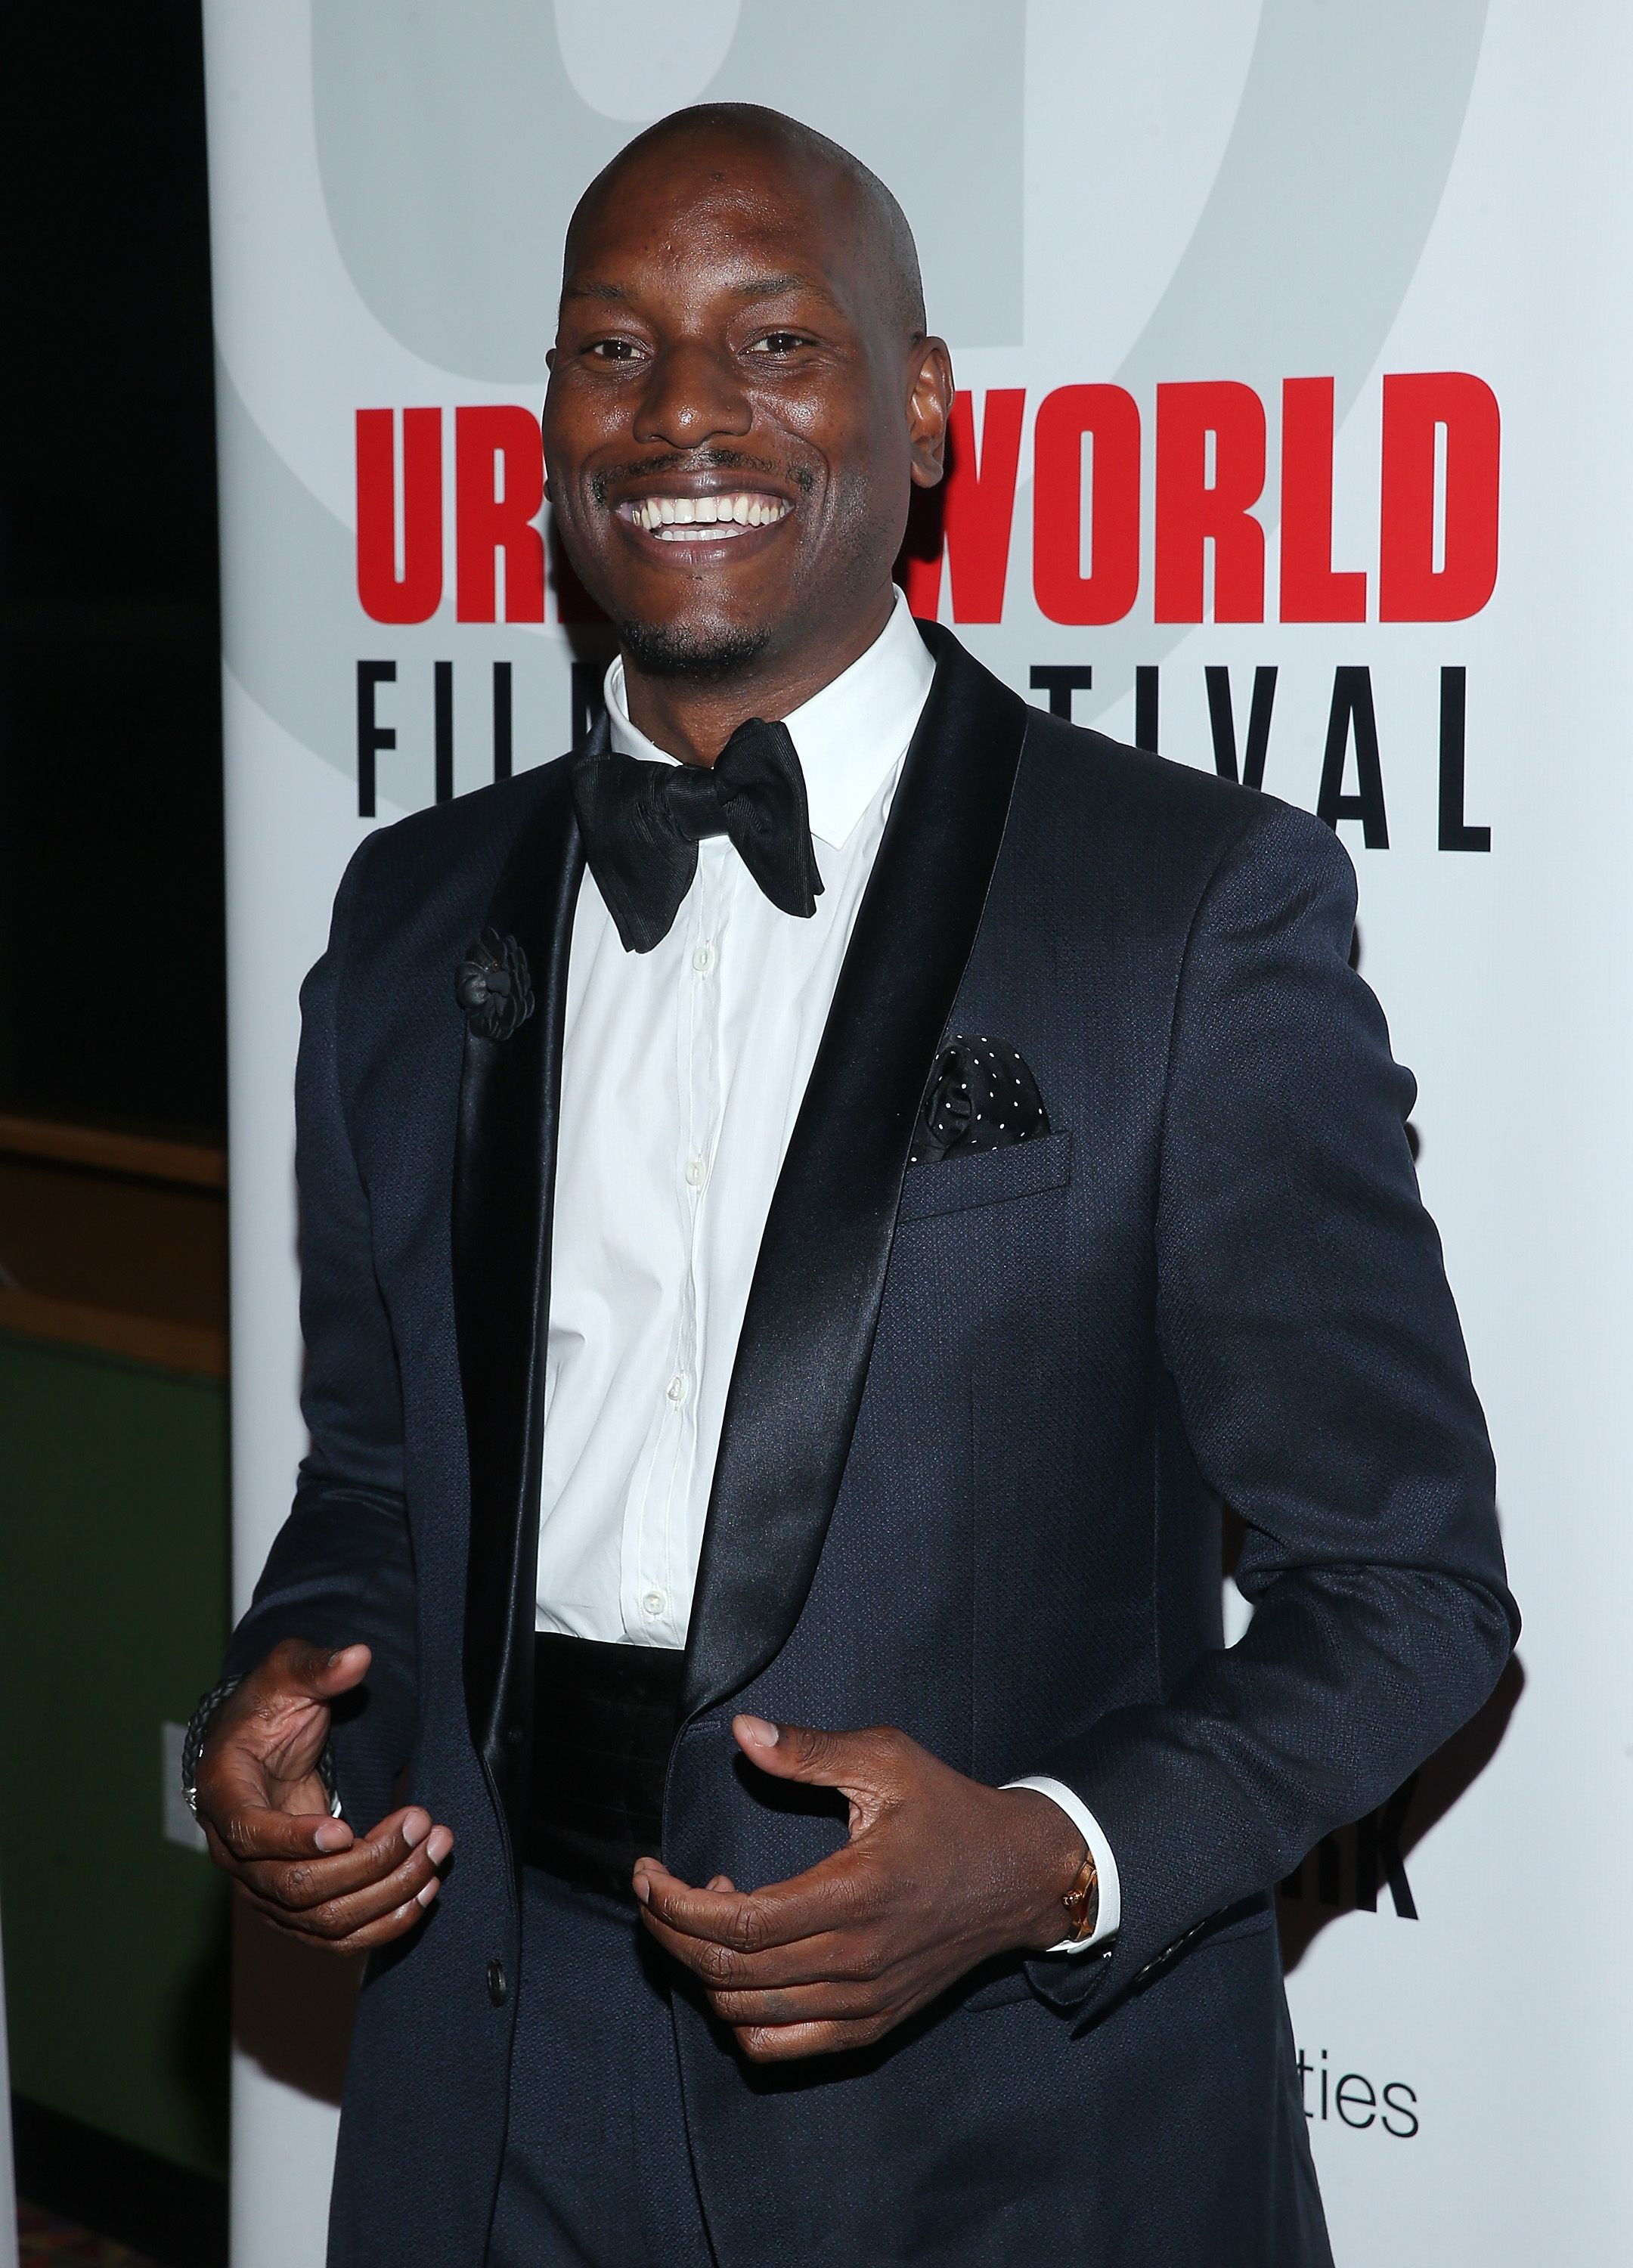 Tyrese Gibson at the 2015 Urbanworld Film Festival at AMC Empire 25 Theater on September 26, 2015 in New York City   Photo: Getty Images